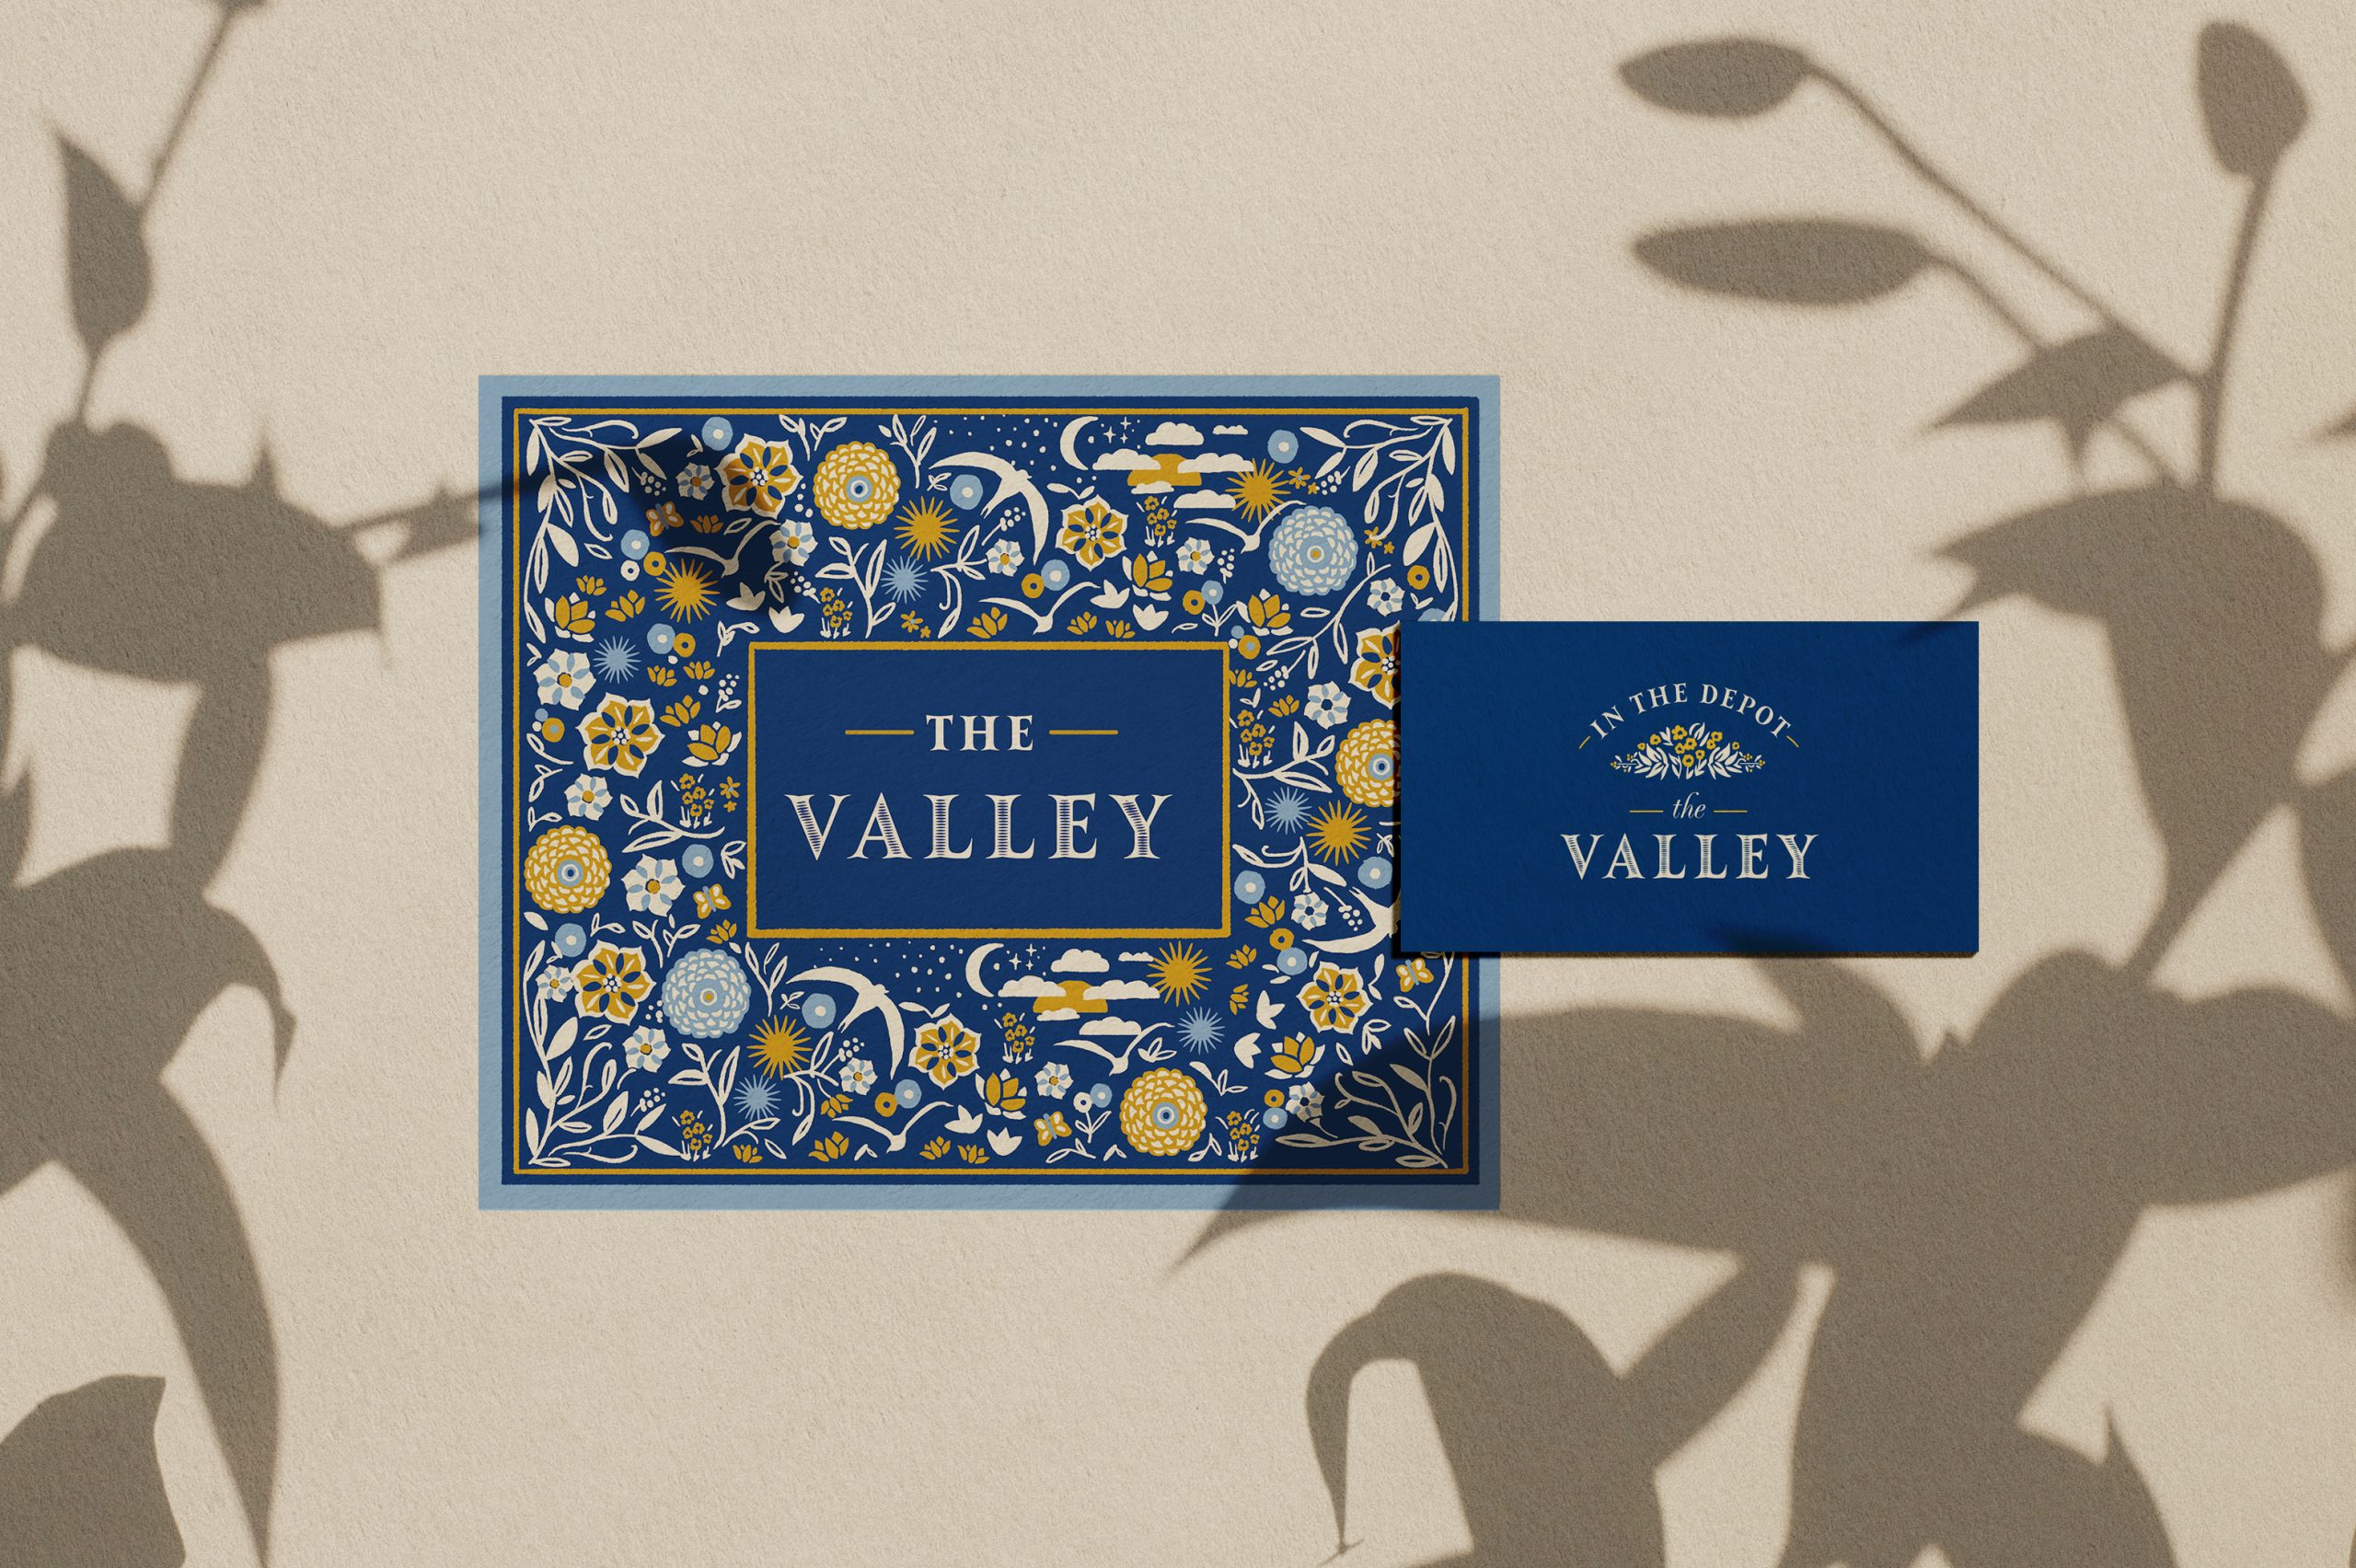 The Valley branding